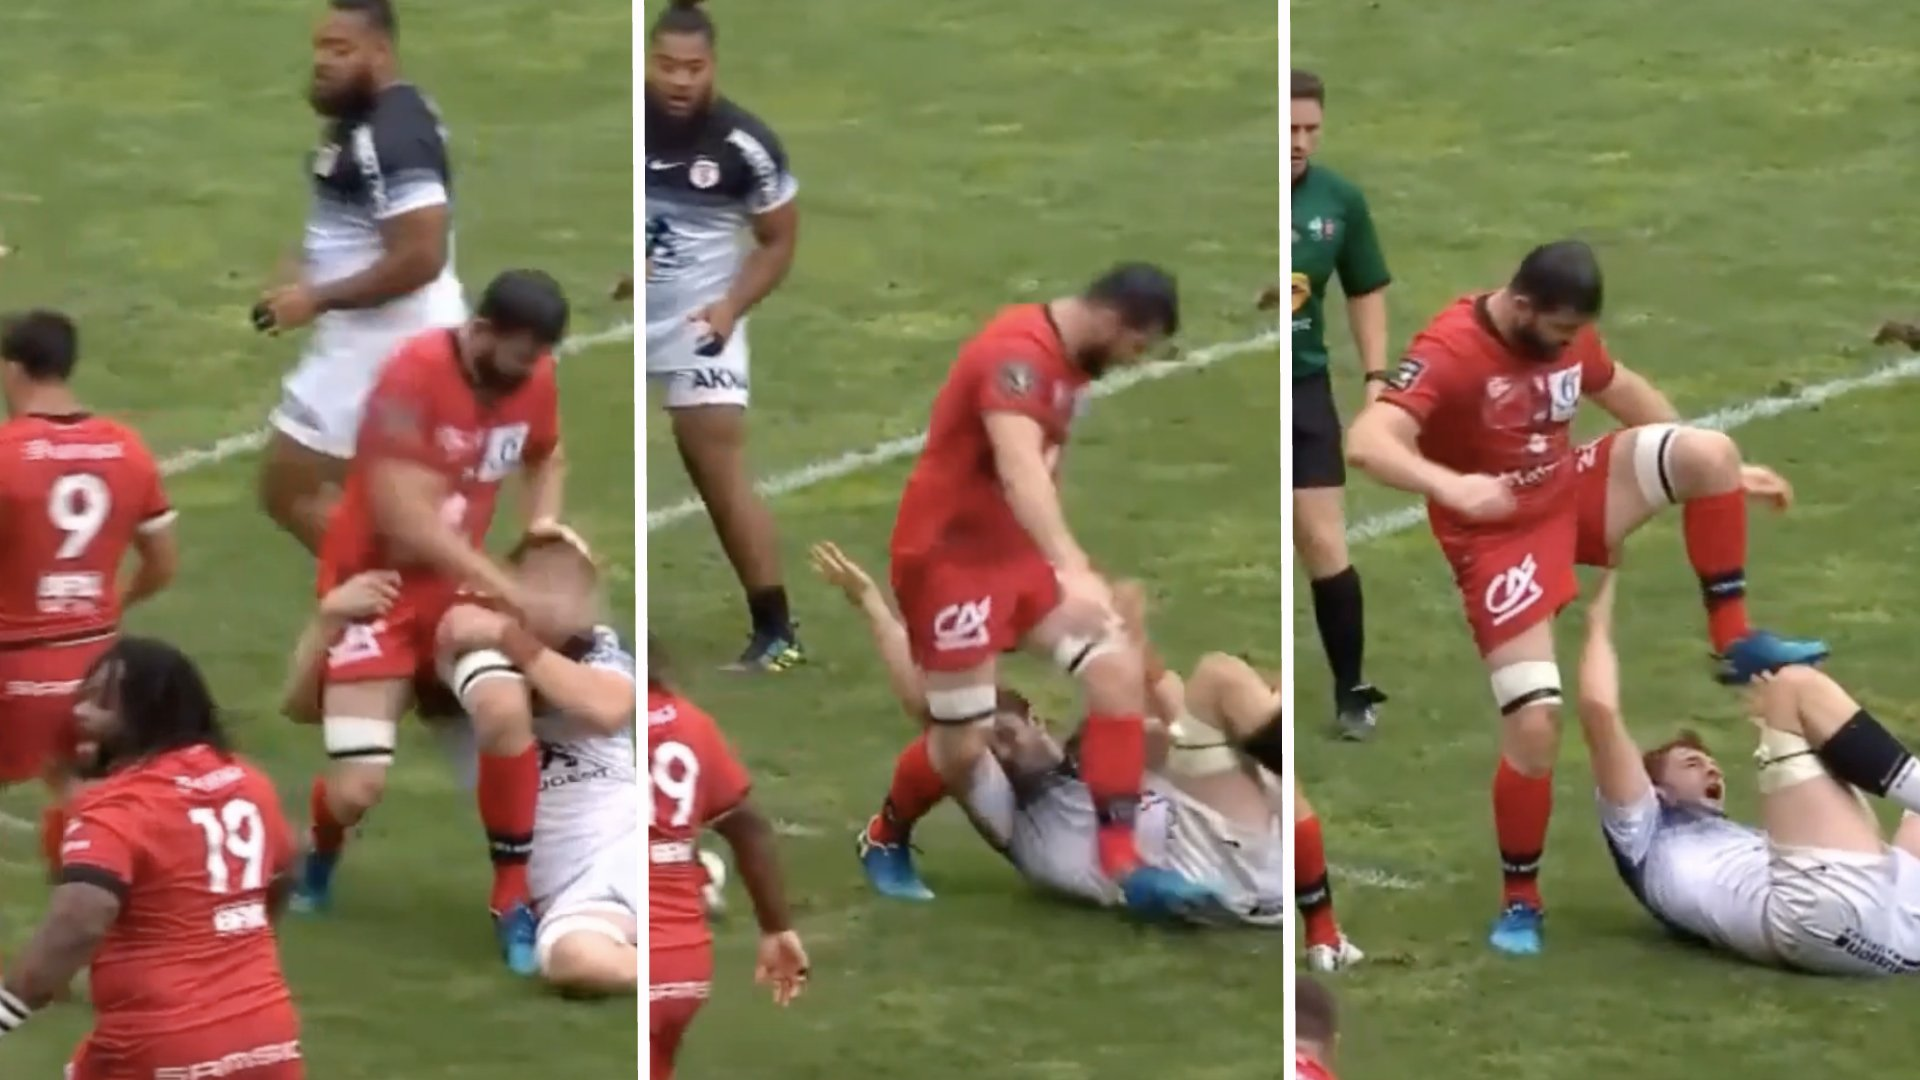 Shocking footage emerges of Richie Gray being stamped